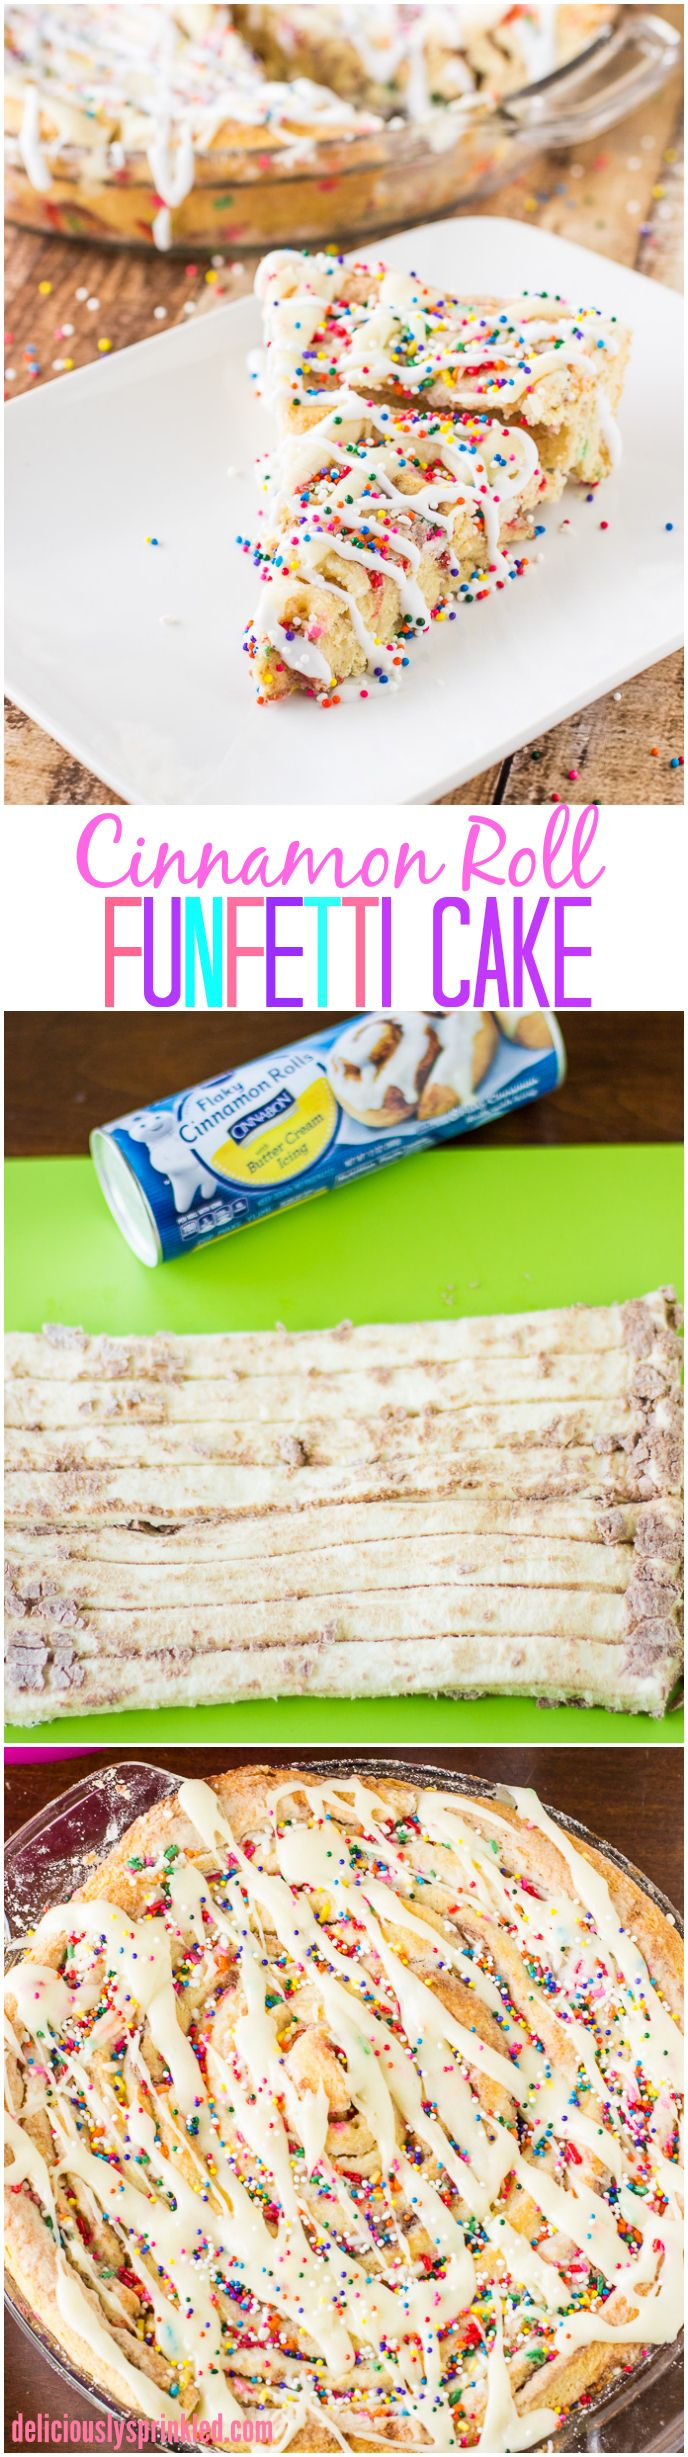 The BEST Cinnamon Roll Cake EVER! And it's SO easy to make!! My whole family LOVES this Cinnamon Roll Funfetti Cake!